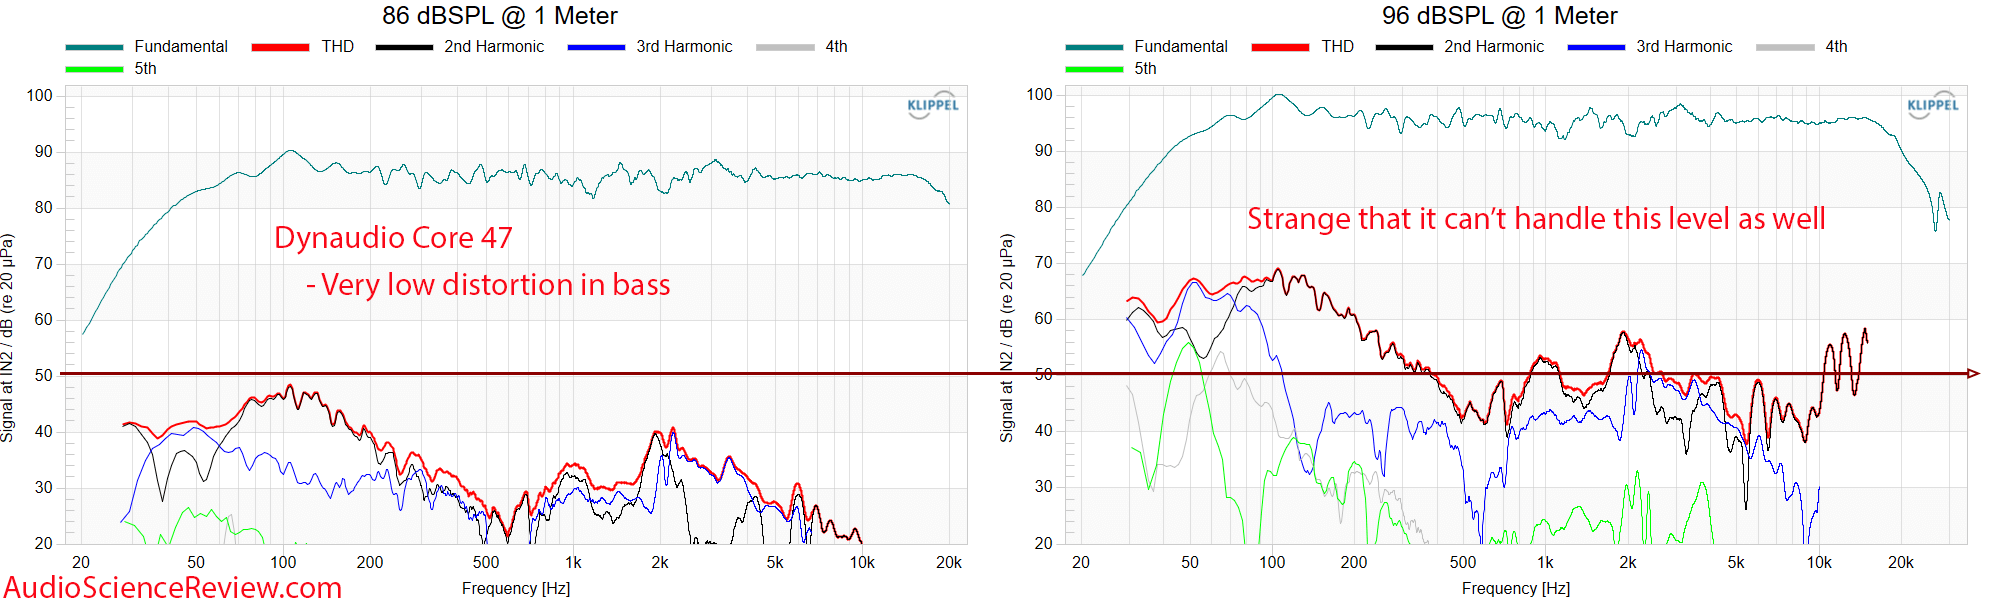 Dynaudio Core 47 THD distortion vs frequency response Measurements Professional Monitor.png